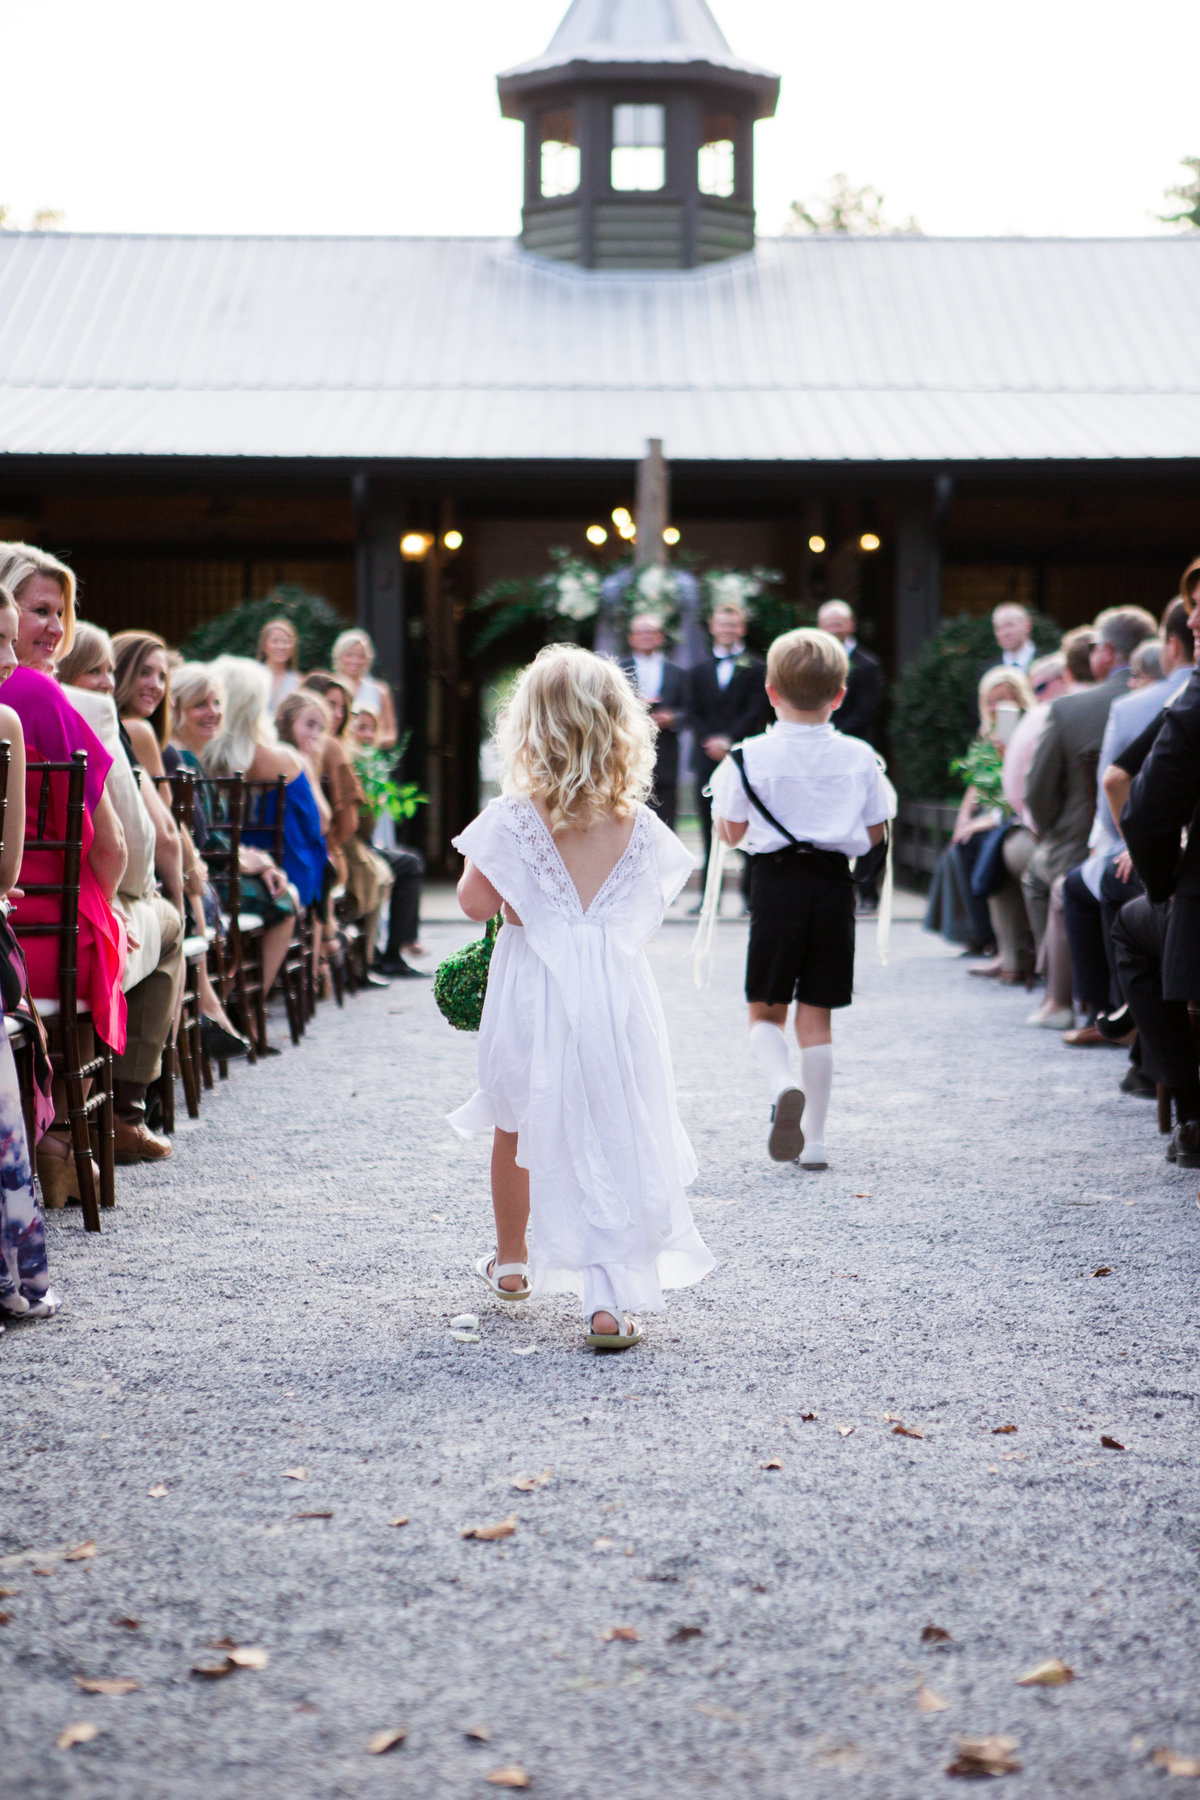 Windwood_Equestrian_Outdoor_Farm_Wedding_VenueBest_Birmingham42